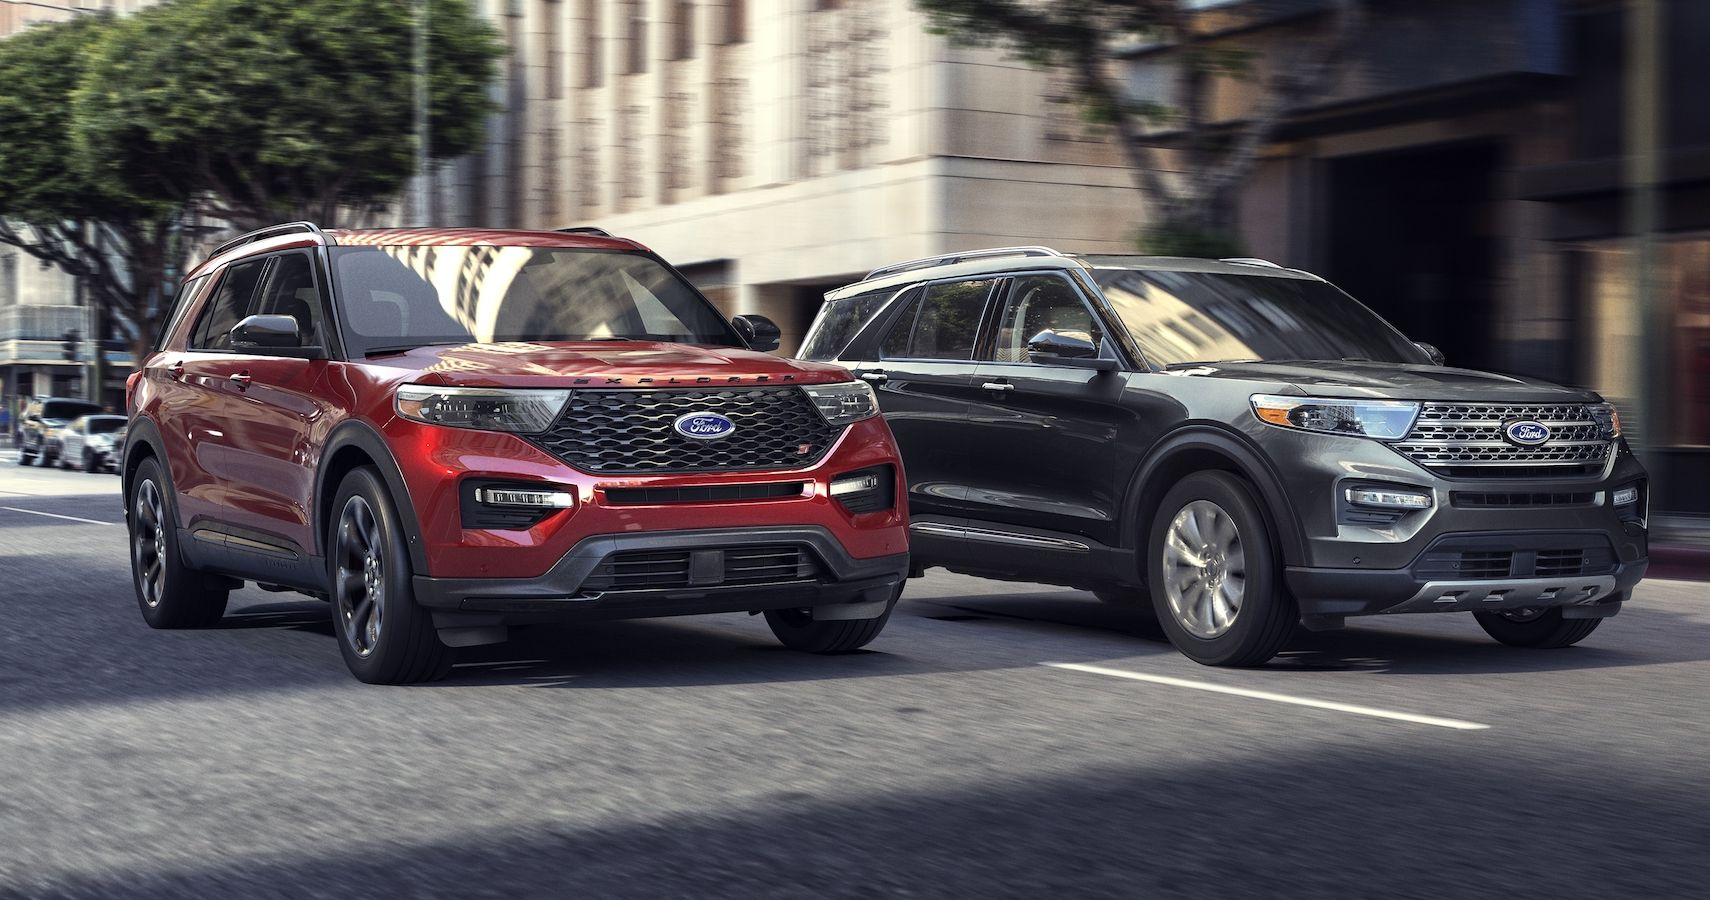 Ford Recalling Over 700,000 Vehicles Due To Faulty Backup Cameras